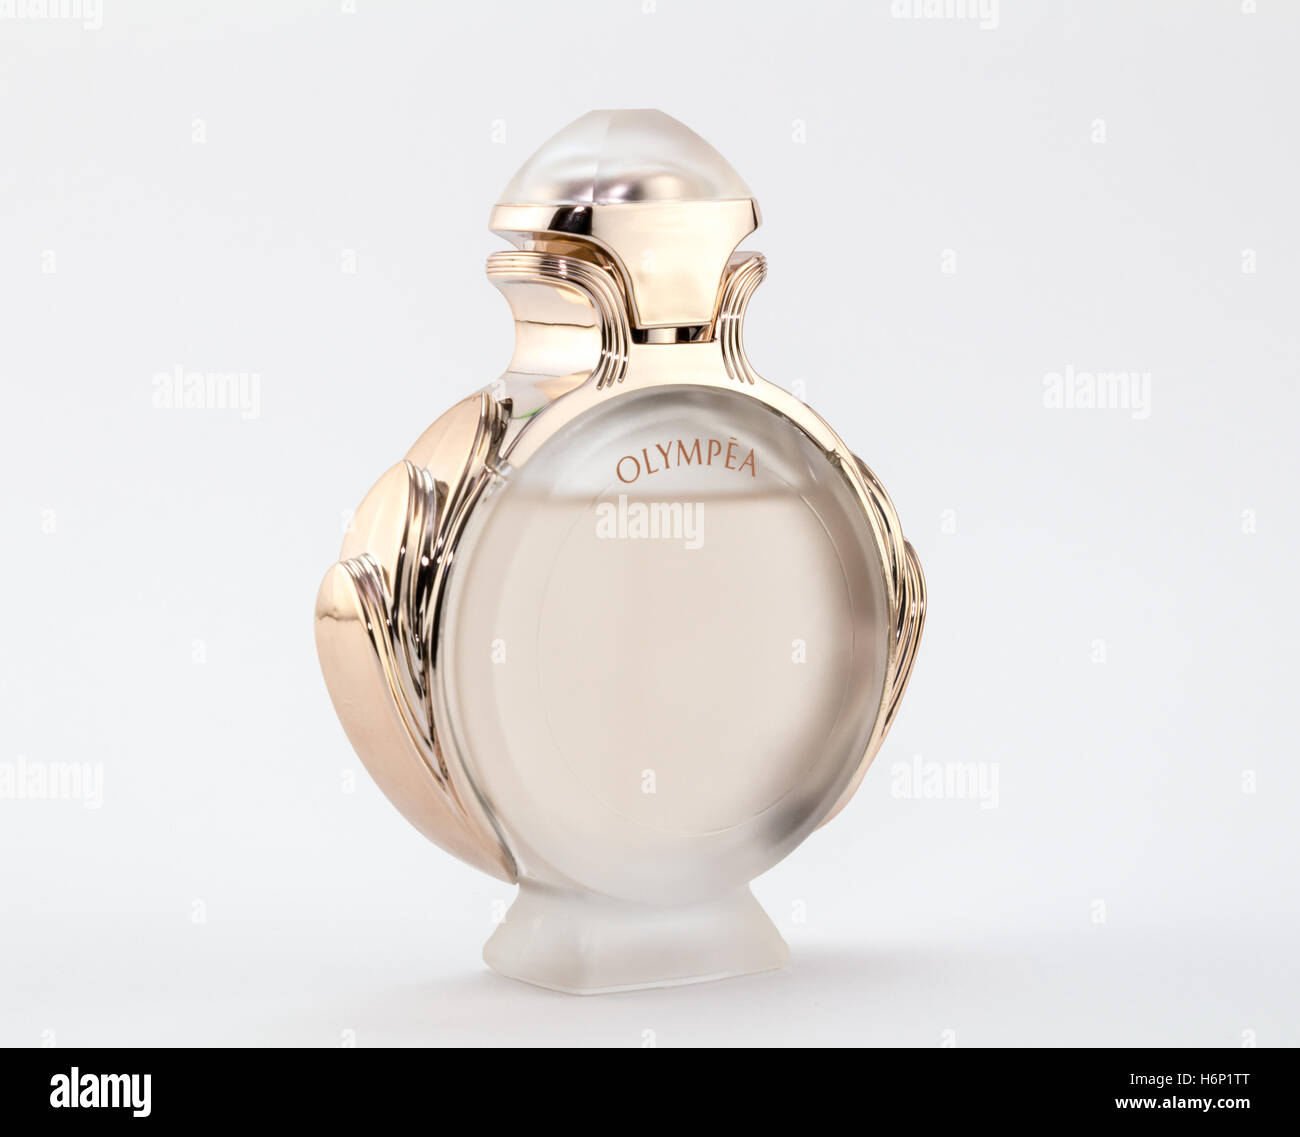 Olympea perfume for woman by Paco Rabanne - Stock Image